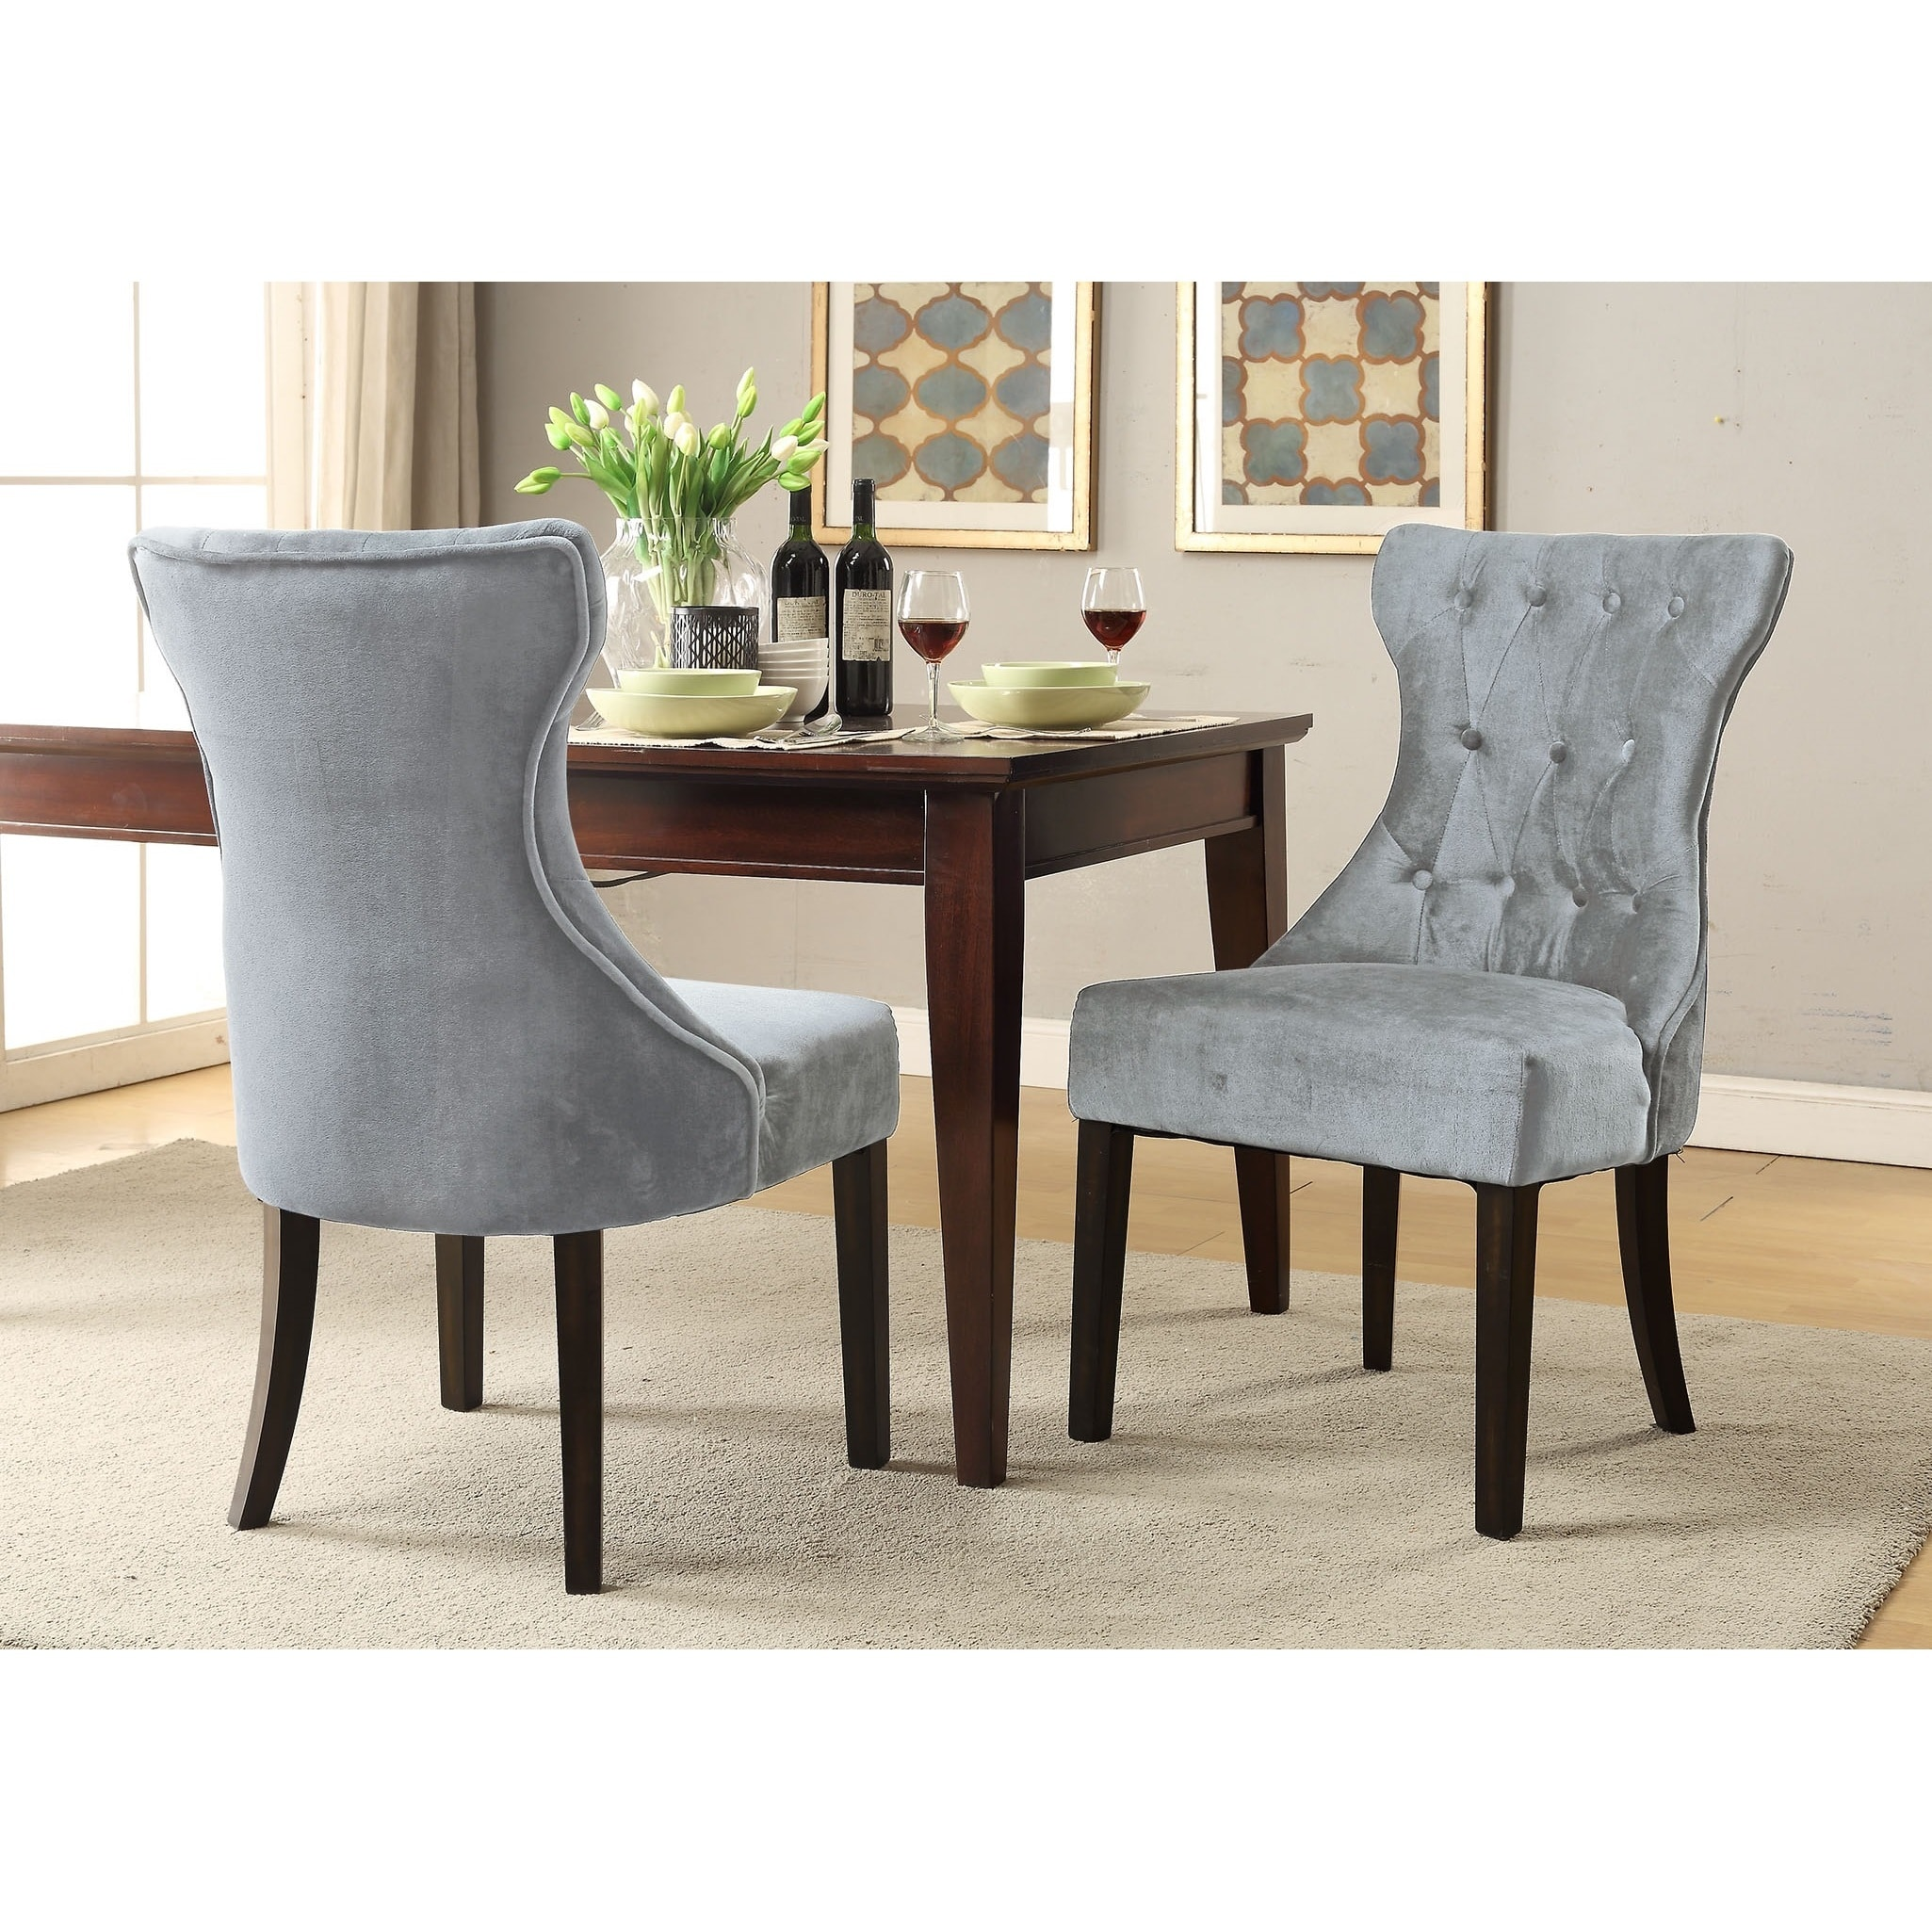 Chic home bronte velvet modern contemporary button tufted tapered rubber wood legs dining chair silver